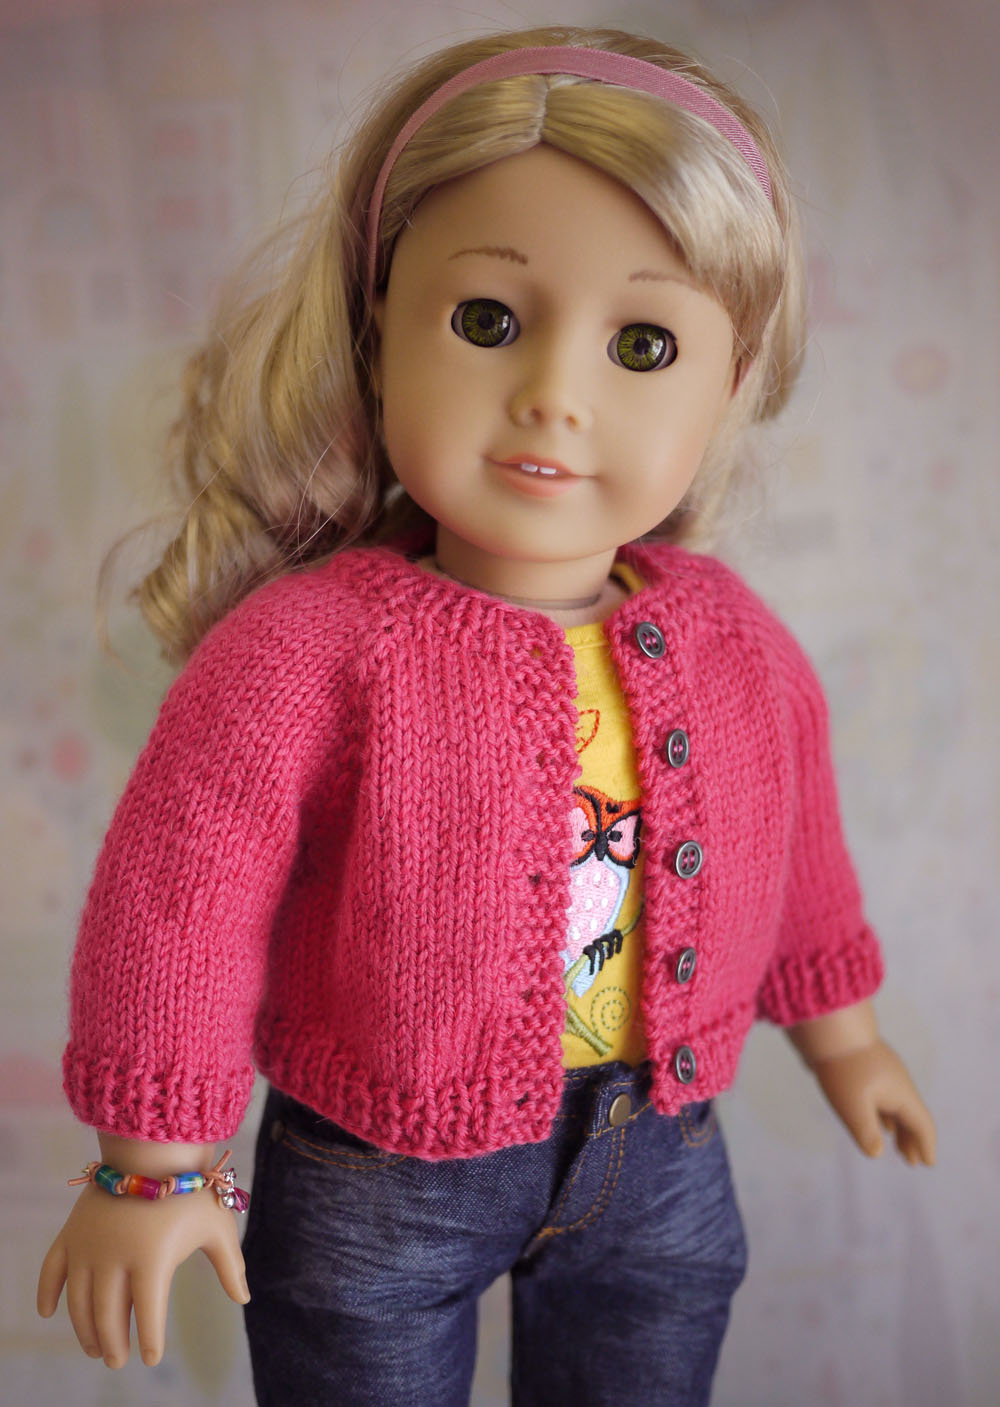 Knitting Patterns For Ag Dolls : American Girl Doll Cardigan Sweater Knitting Pattern Cindy Rice Designs